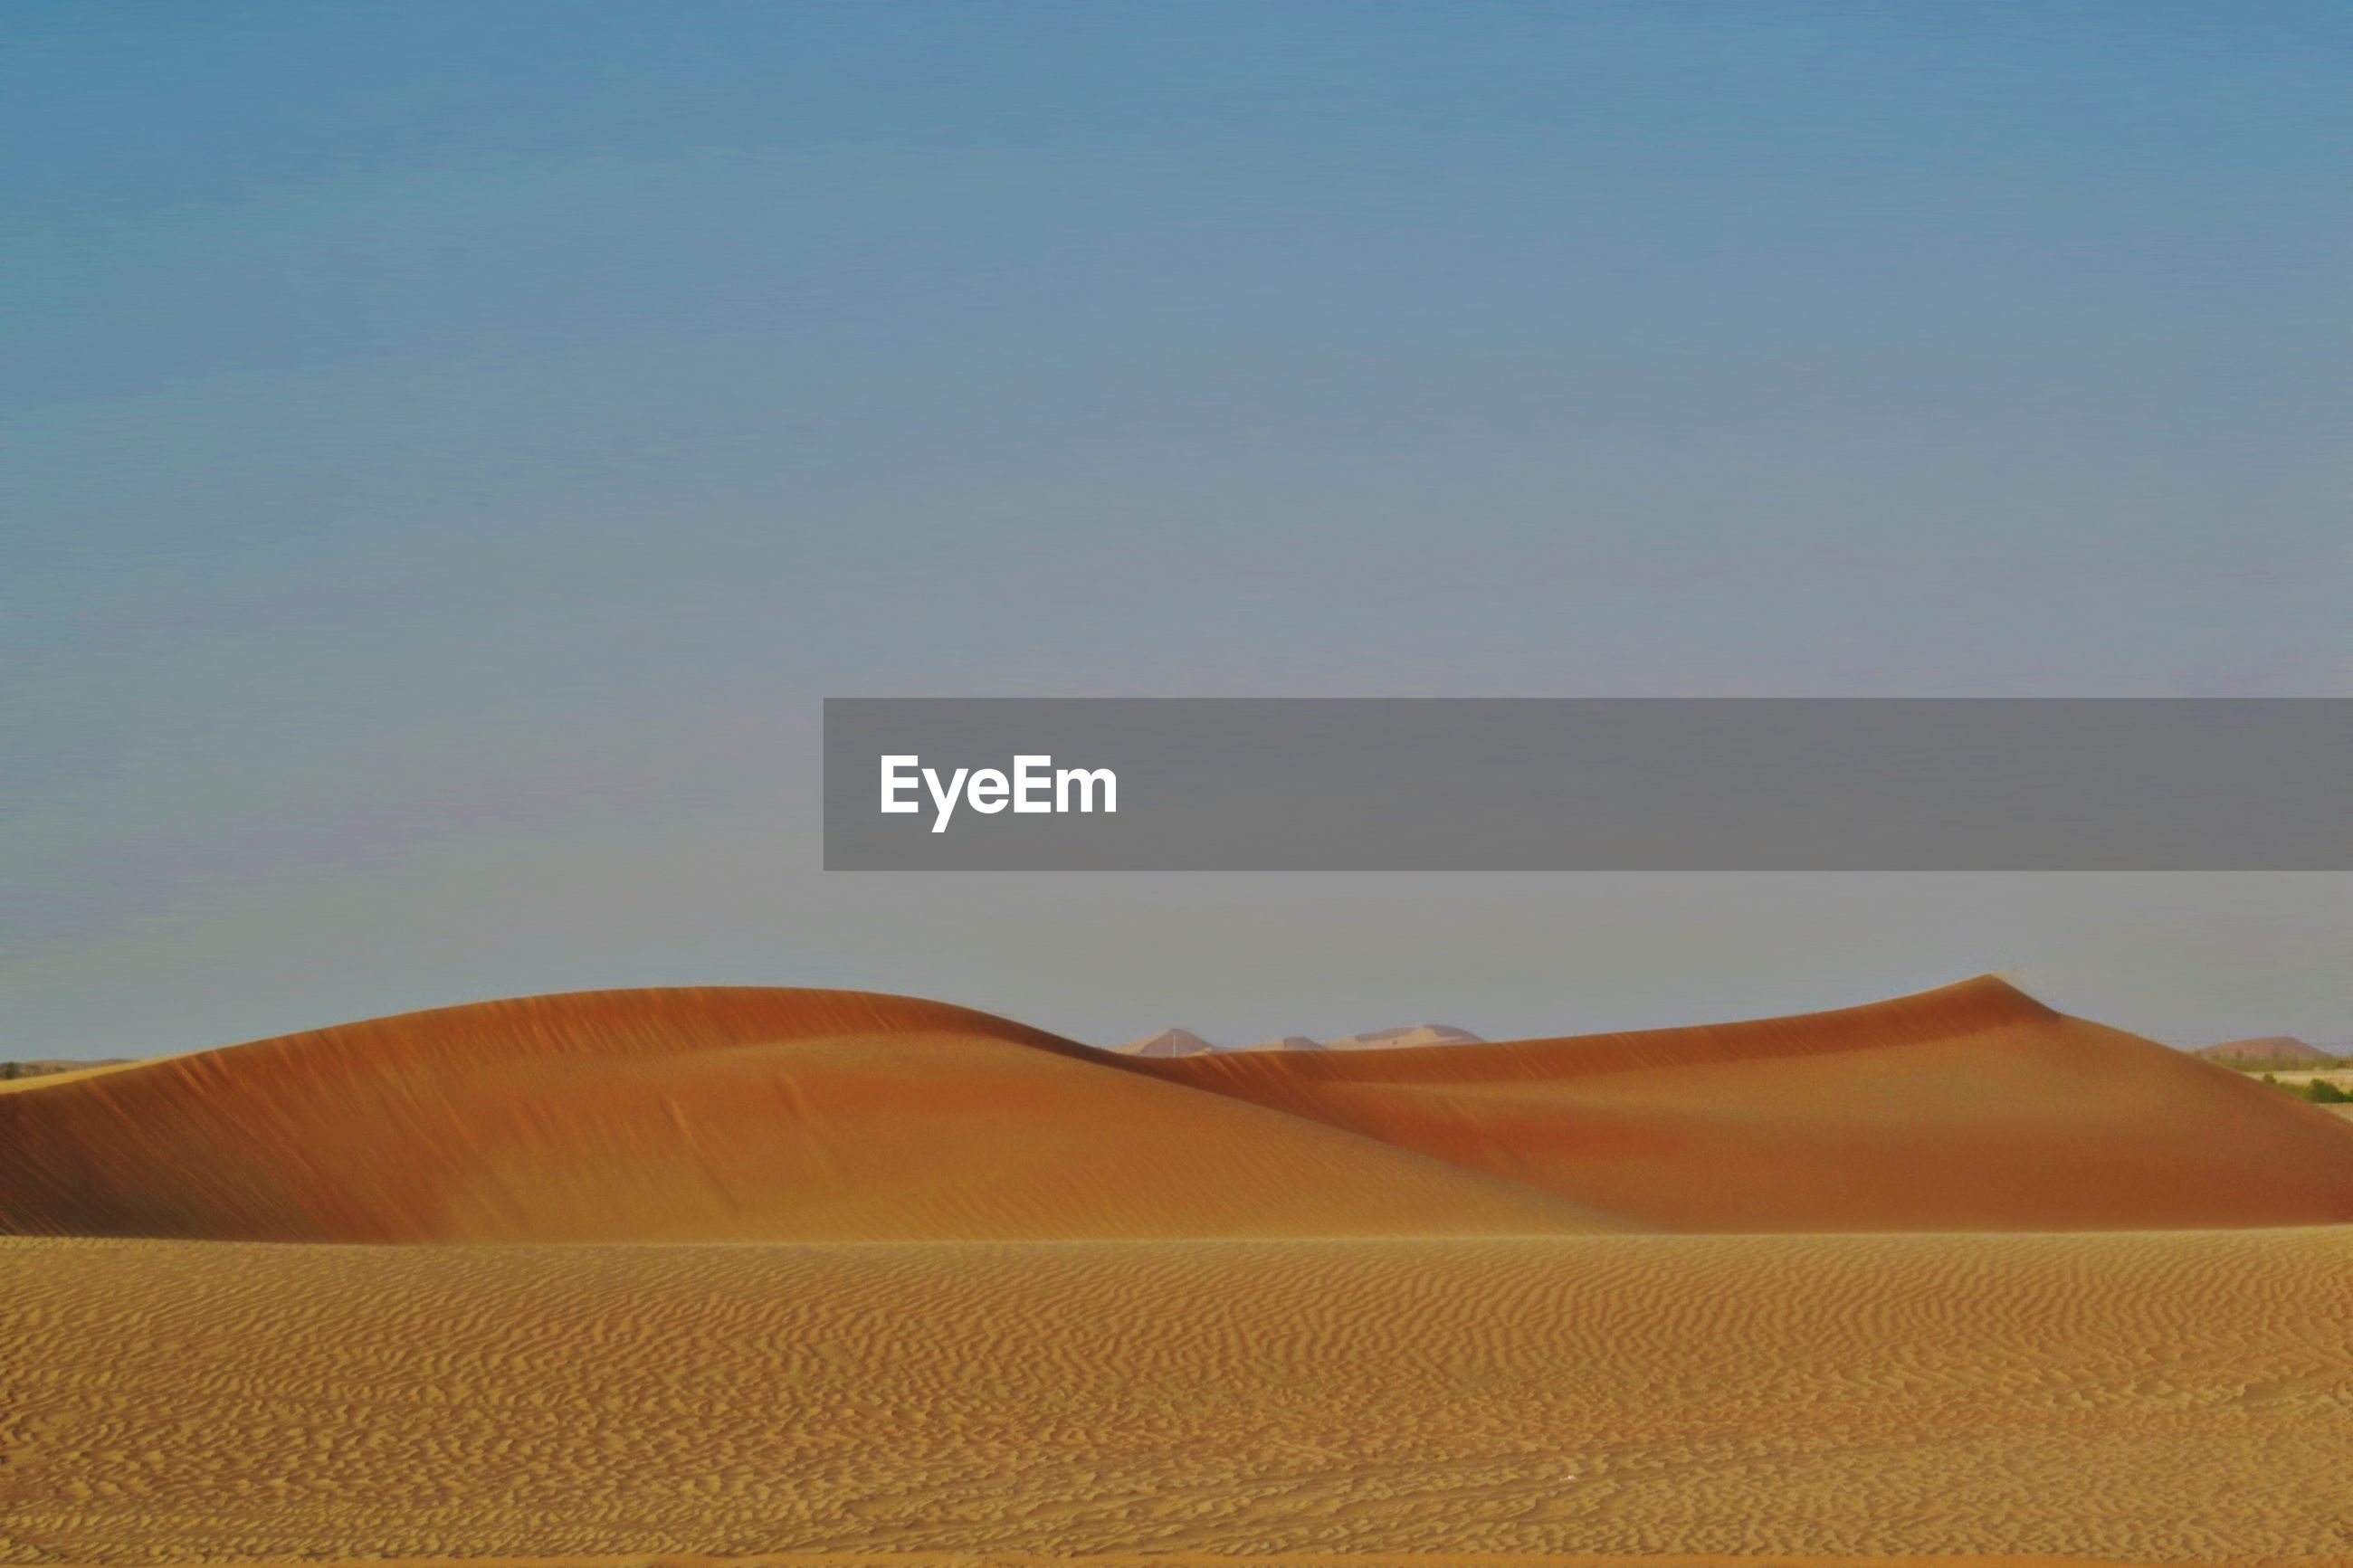 VIEW OF DESERT AGAINST CLEAR SKY